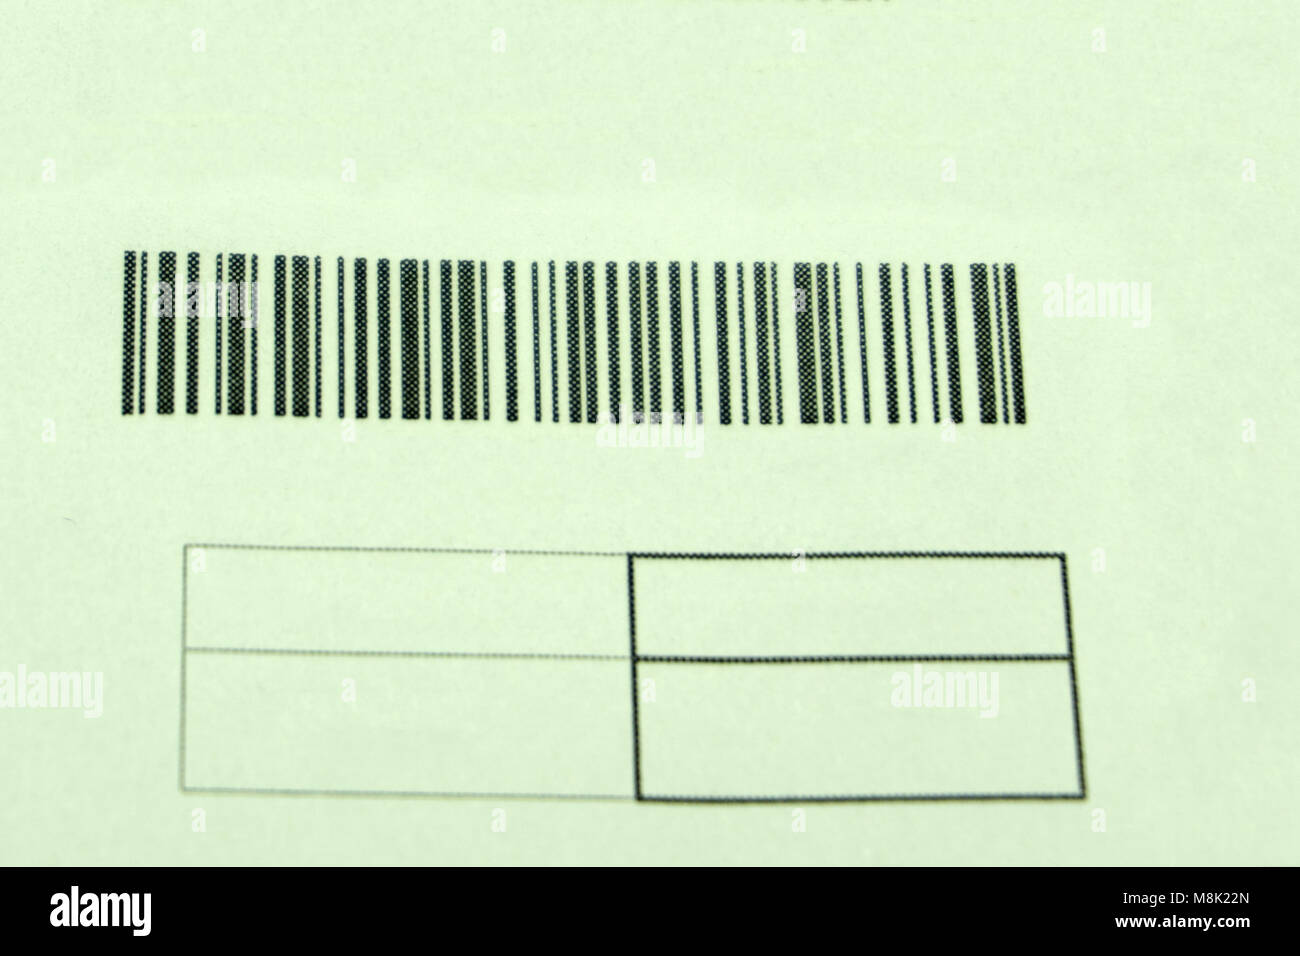 Barcode label on shipping box being scanned with red laser device - Stock Image